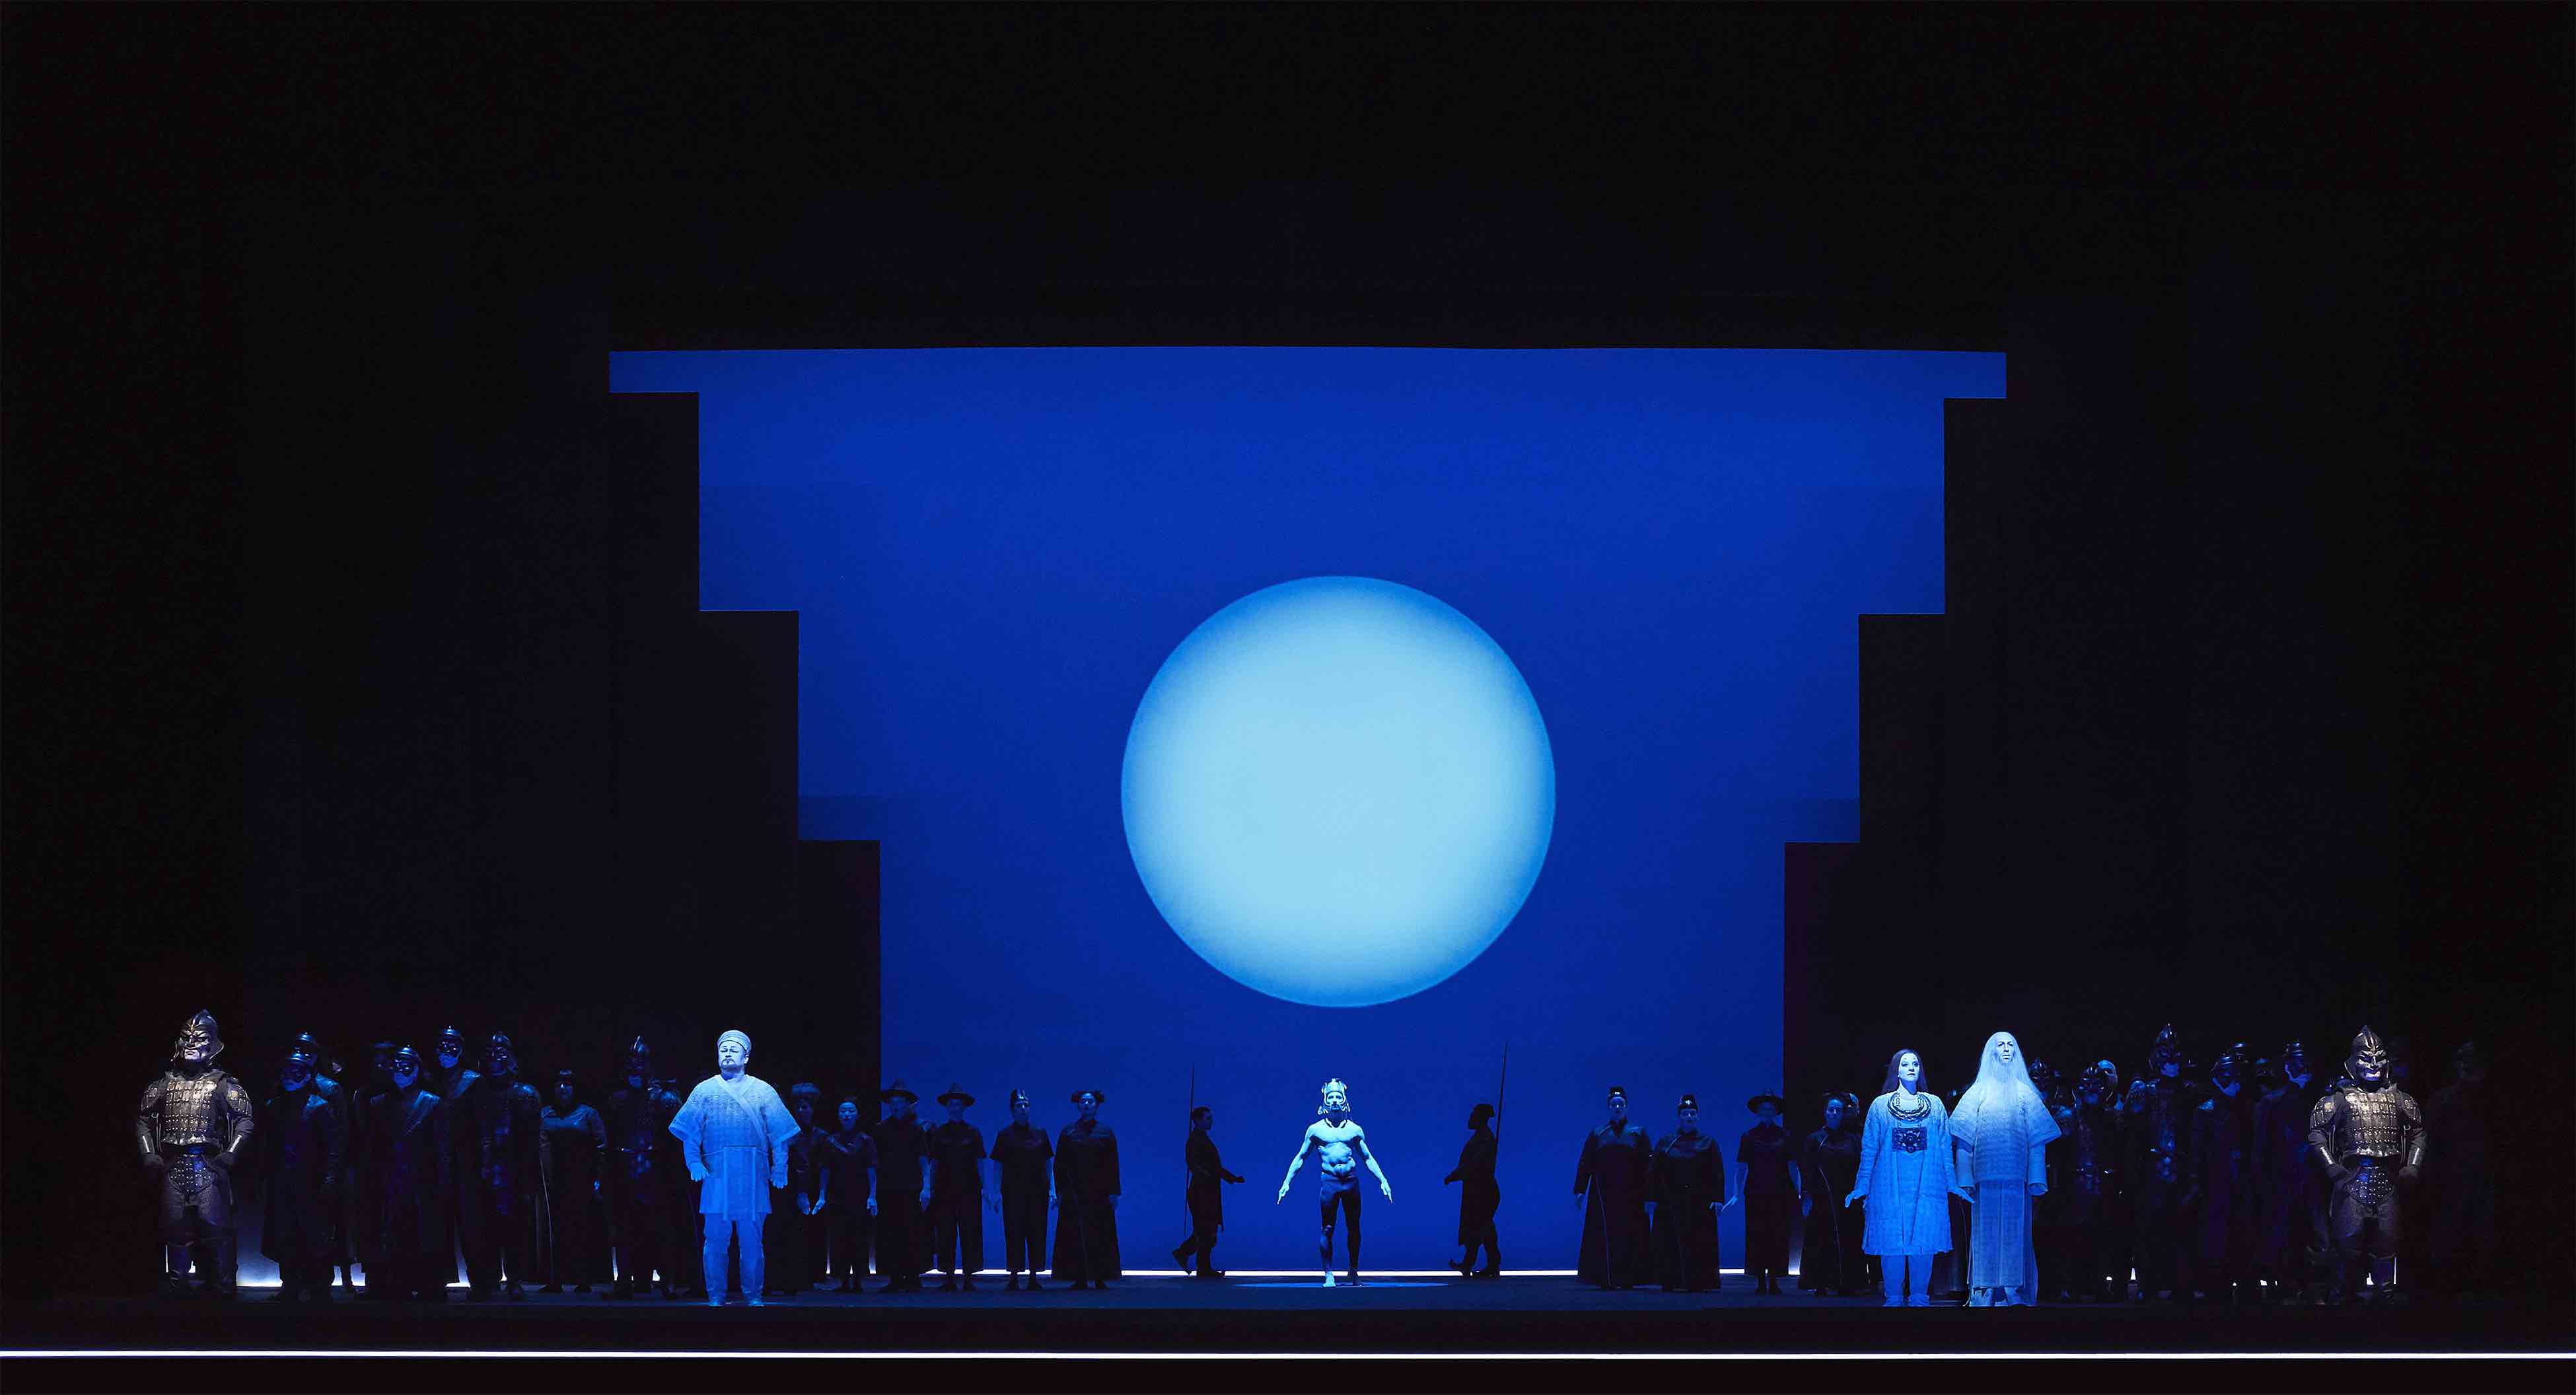 COC's production of Turandot on stage in Toronto showing night scene